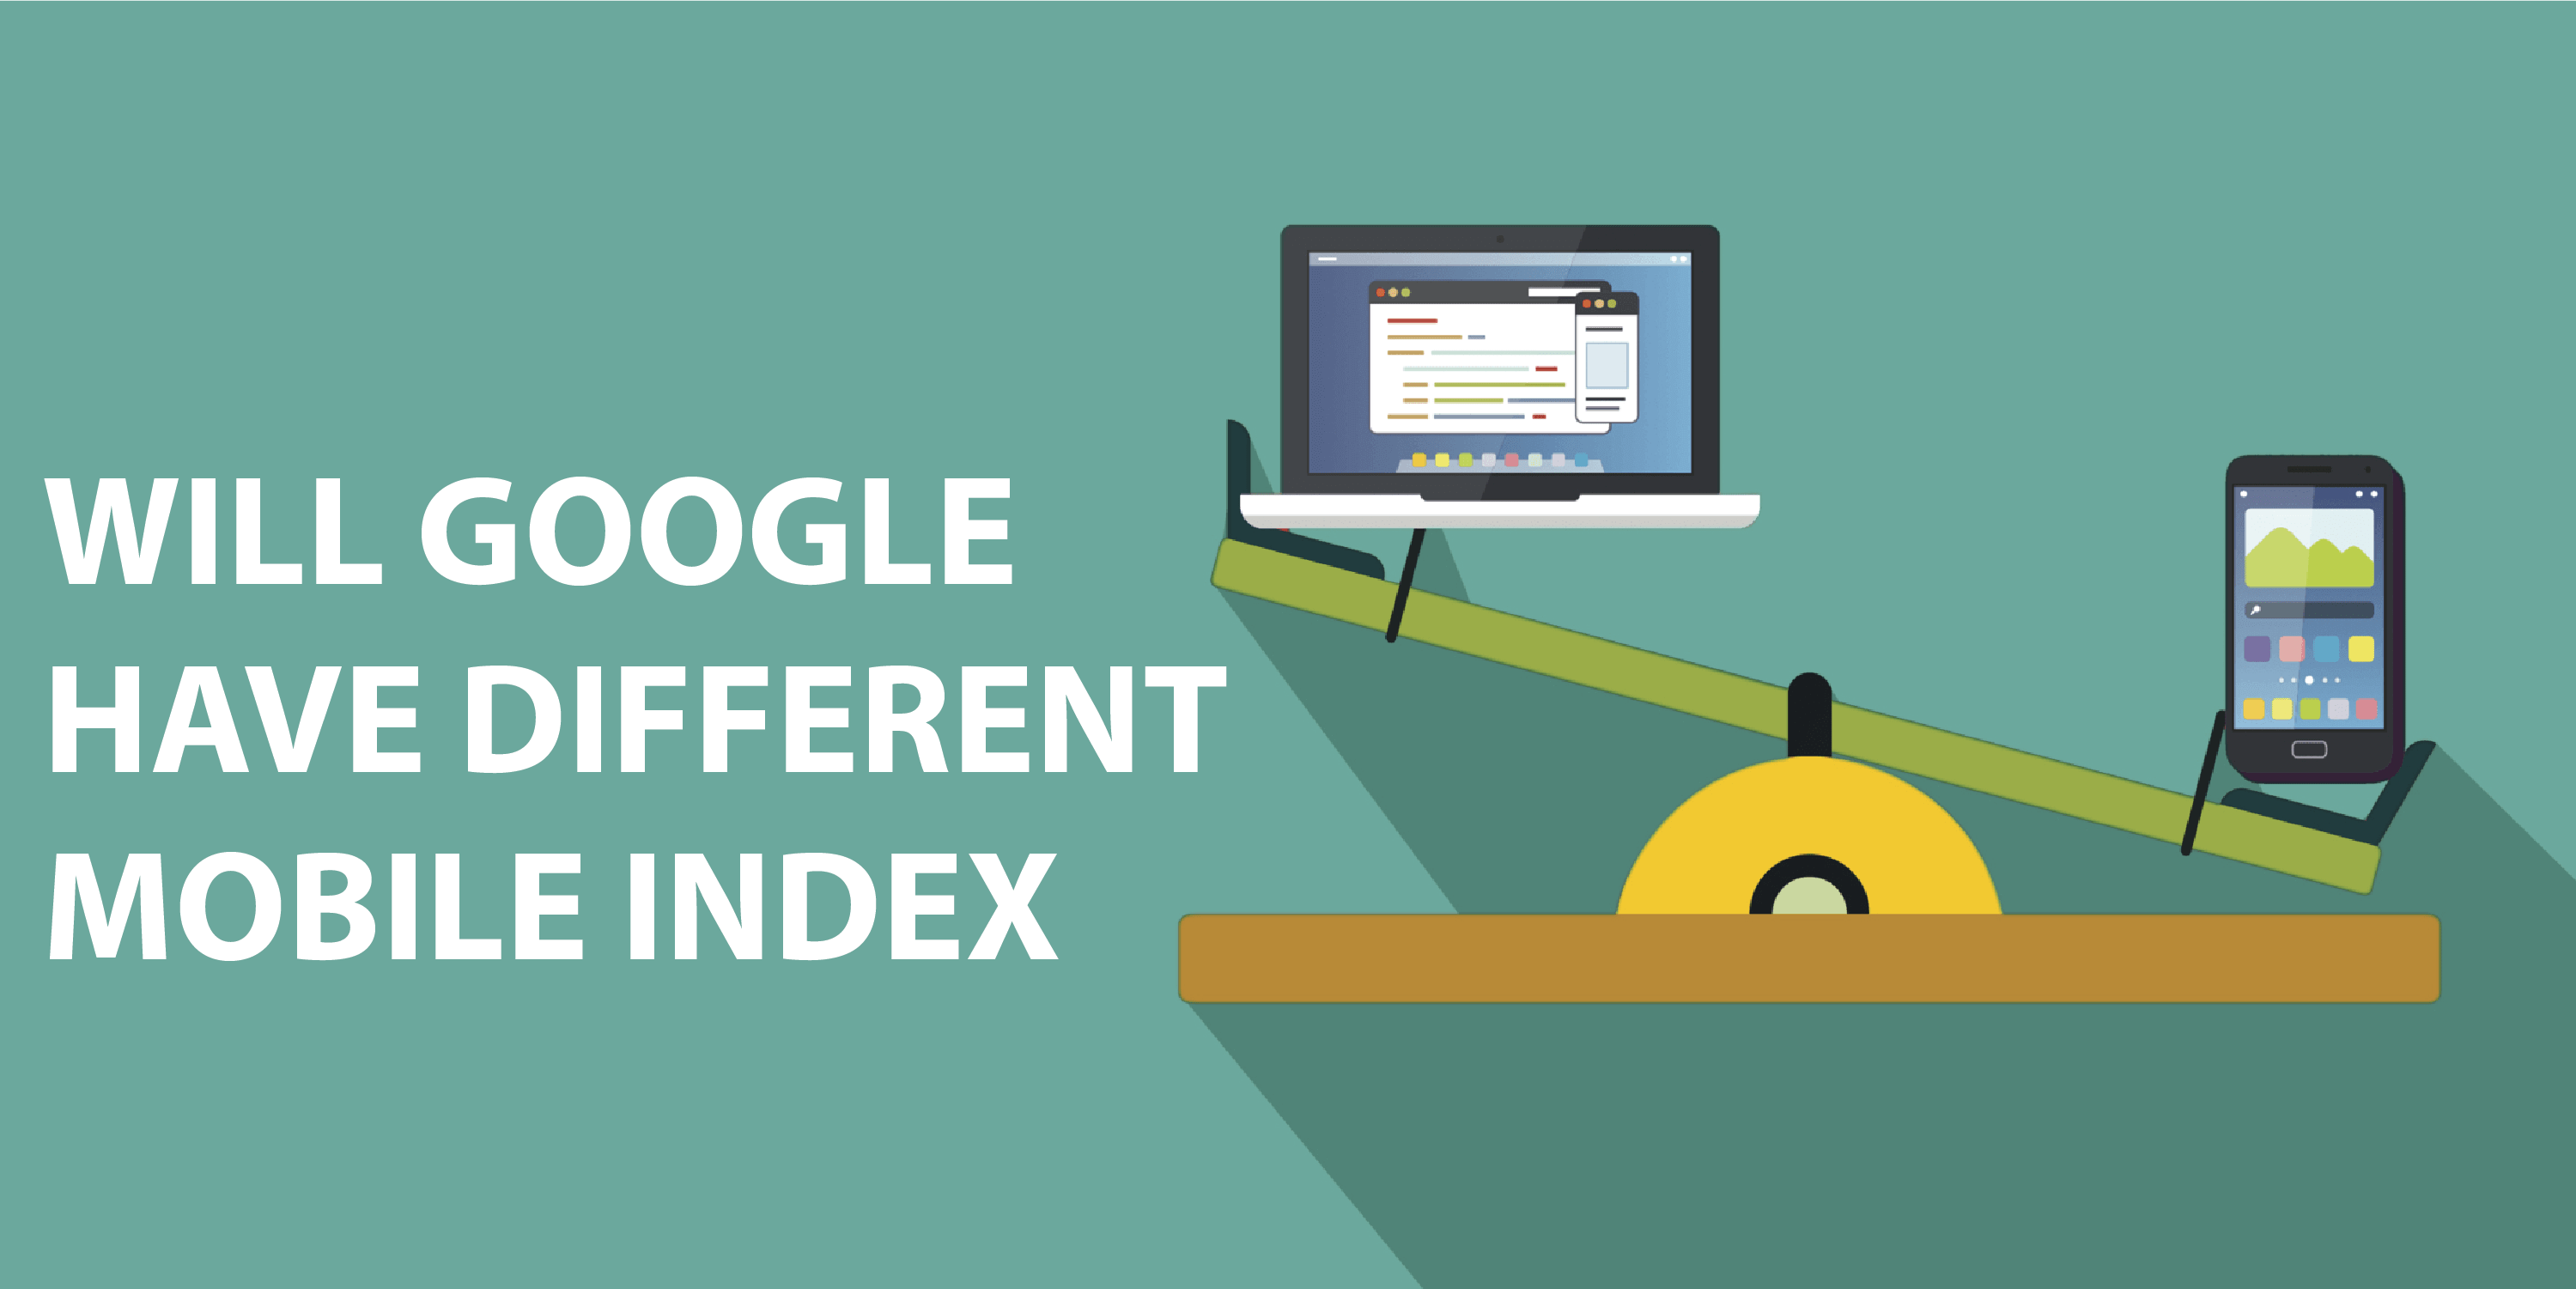 WILL GOOGLE HAVE DIFFERENT MOBILE INDEX AND DESKTOP INDEX